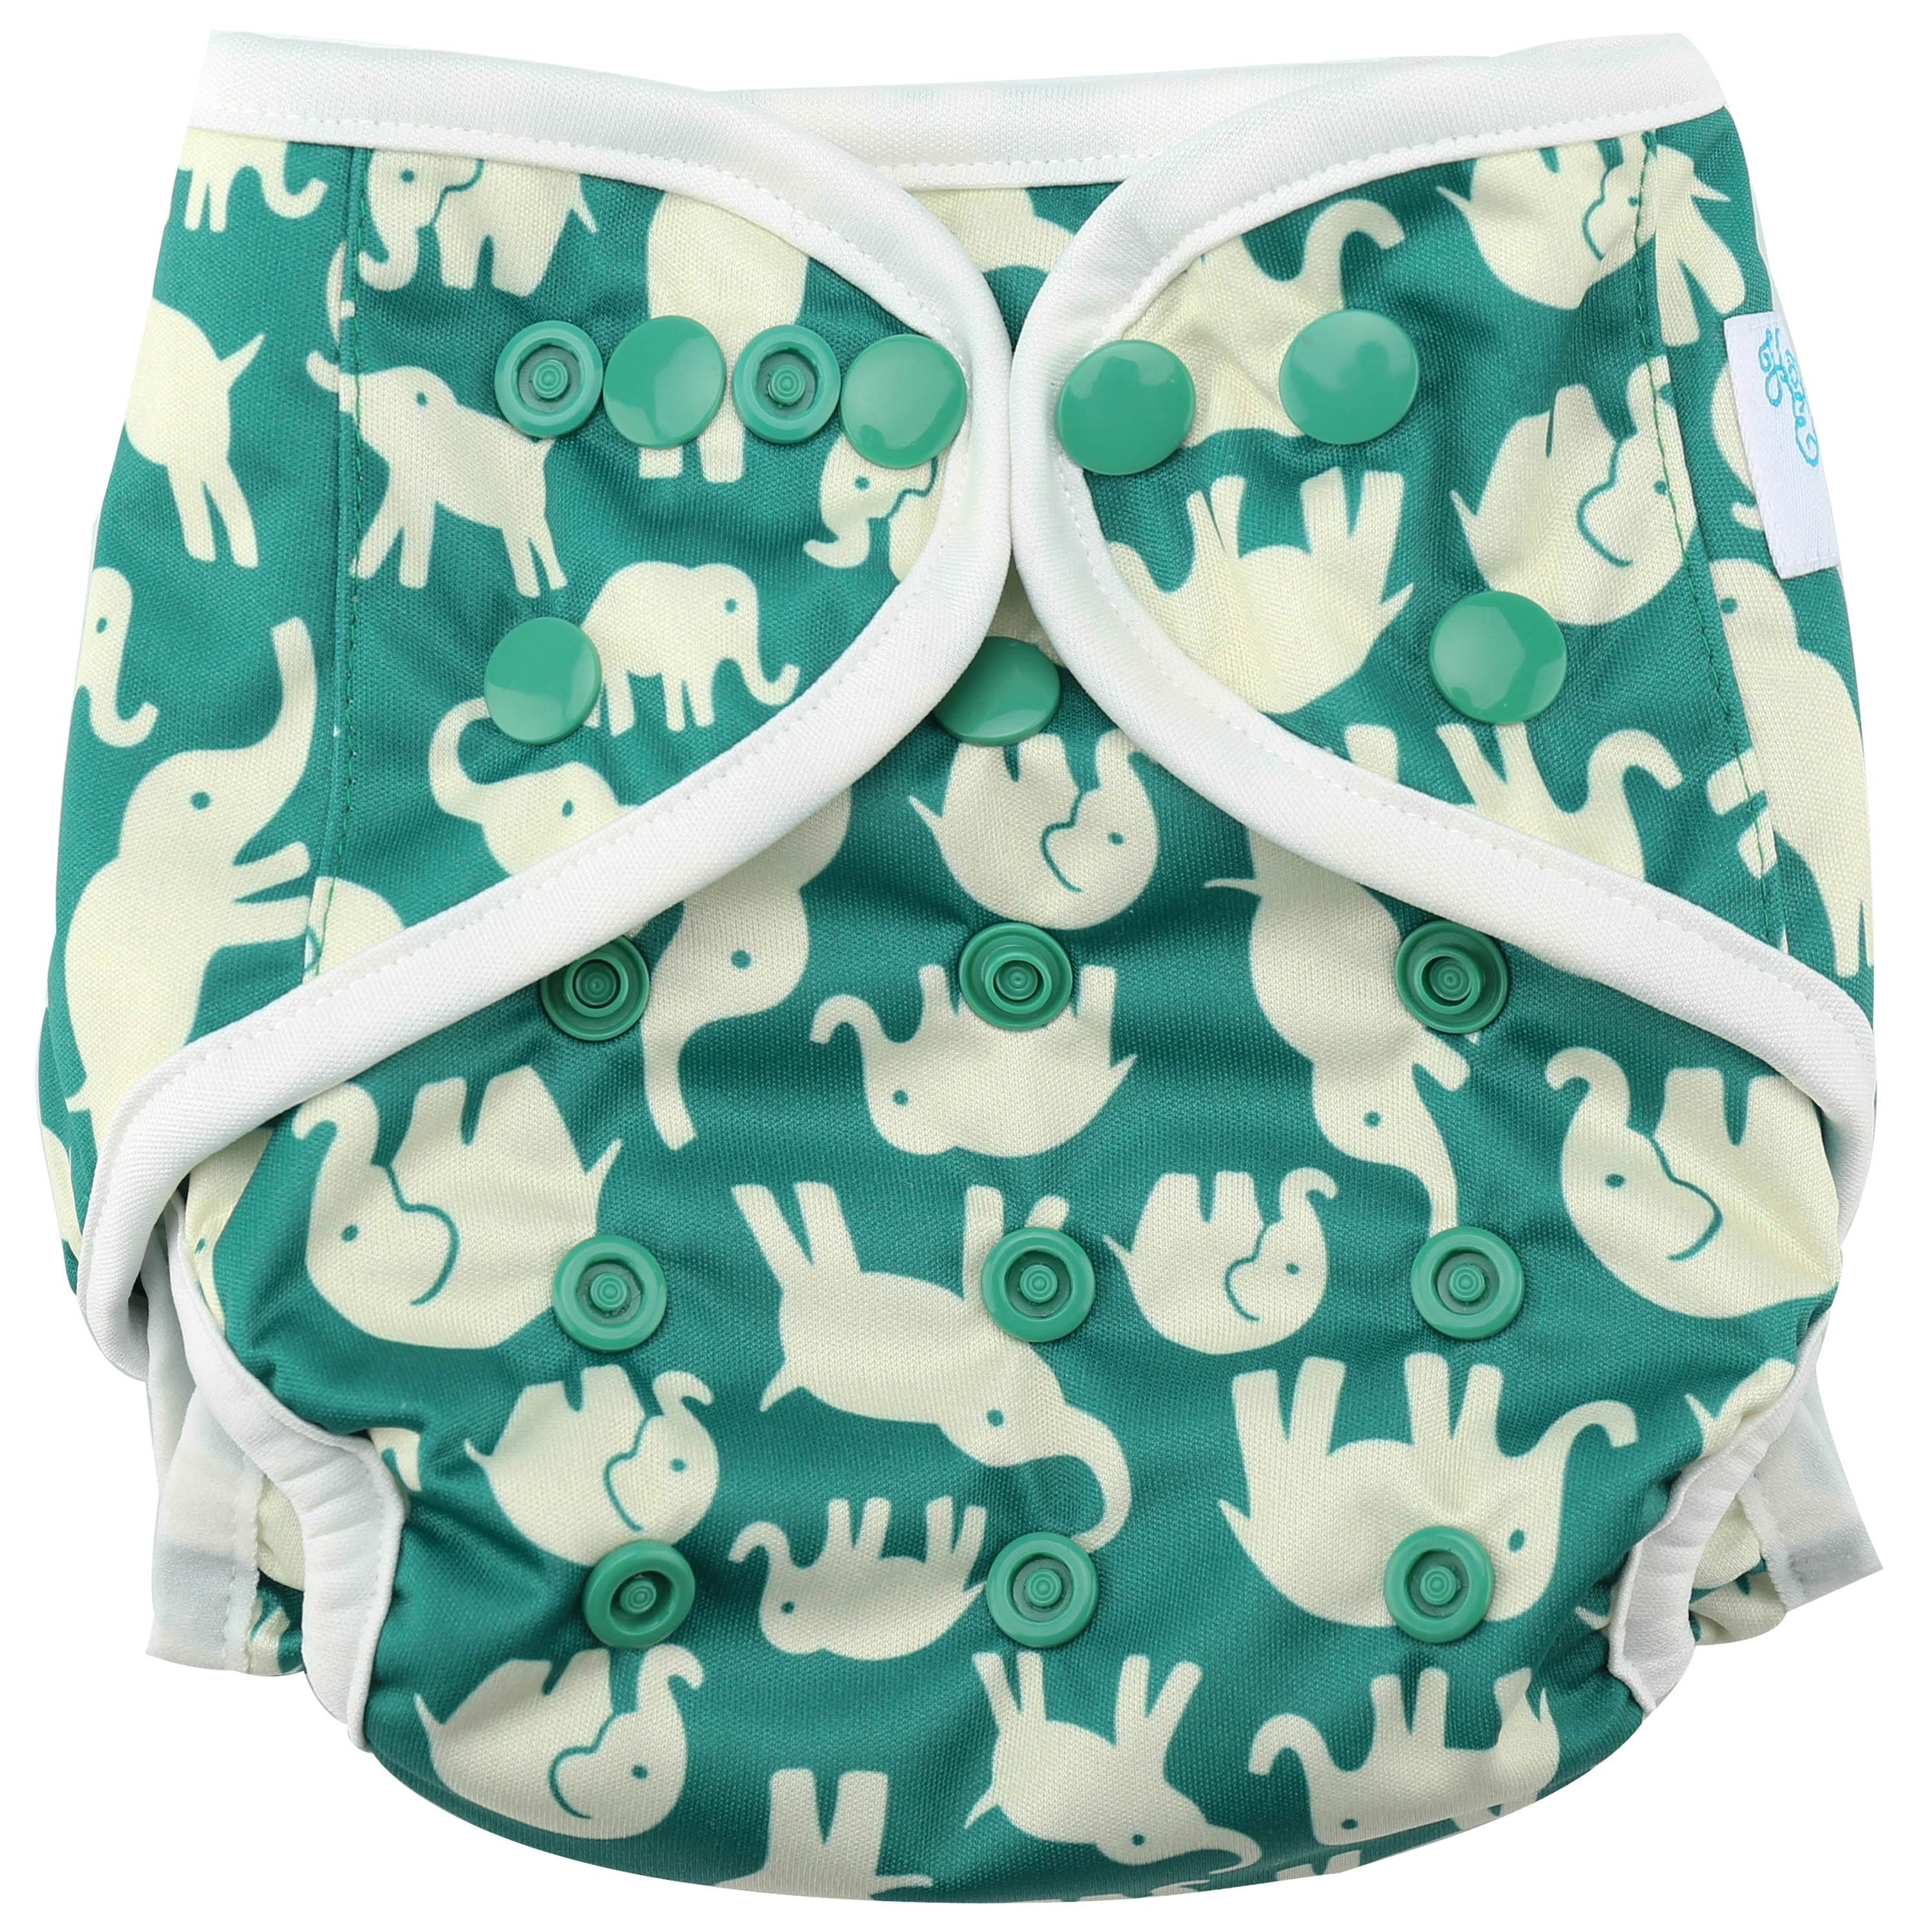 "HappyEndings One Size Cloth Diaper Cover AI2 System ""Elephants"""